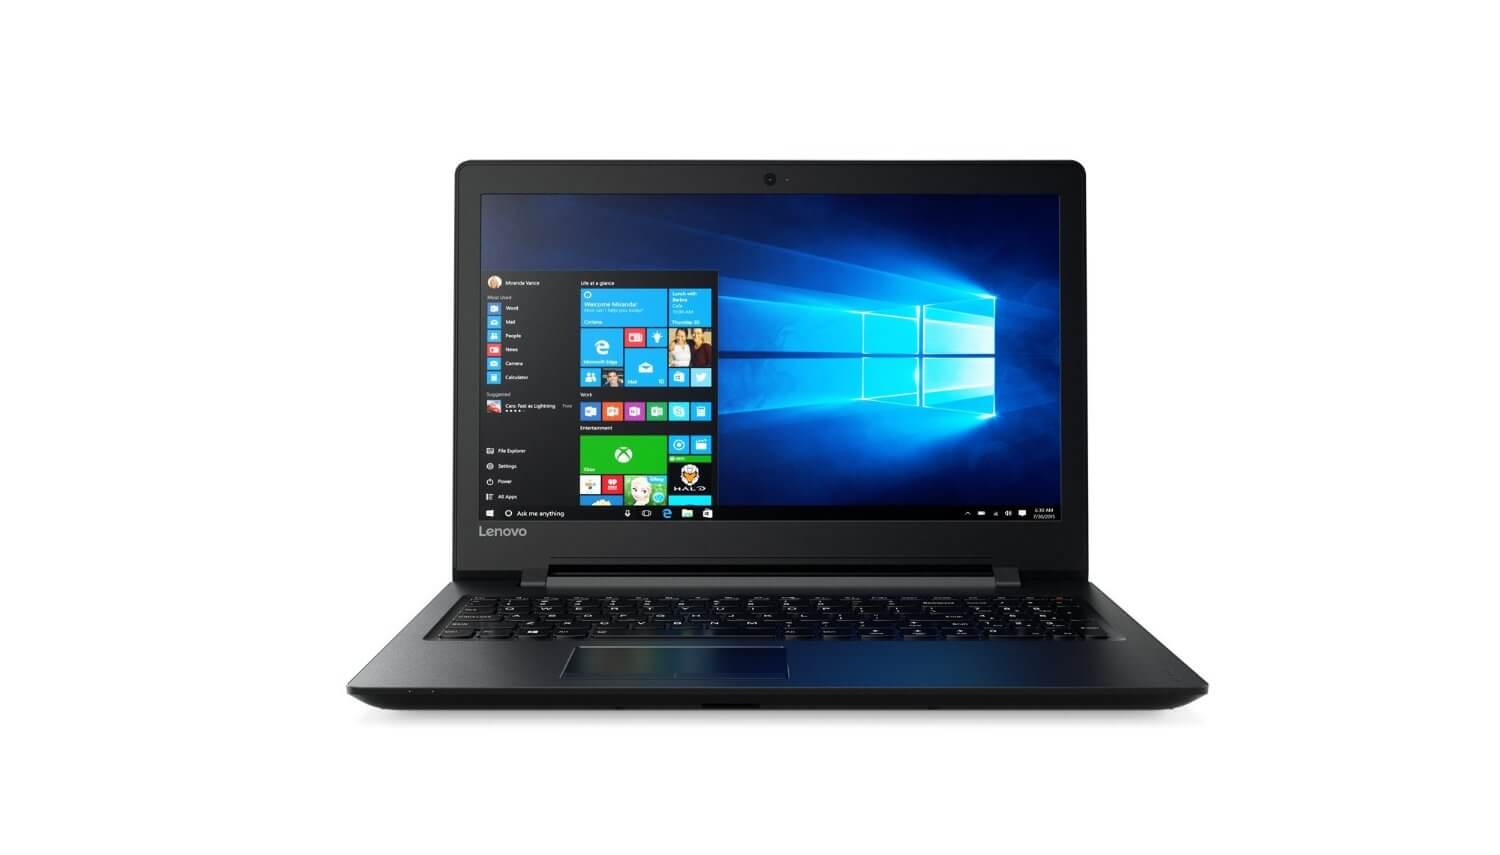 lenovo ideapad 110, best lenovo laptop under 30000, best laptops under 30000, HP laptop, Acer Laptop, Lenovo laptop, dell laptop, best laptop, best laptop under 30000